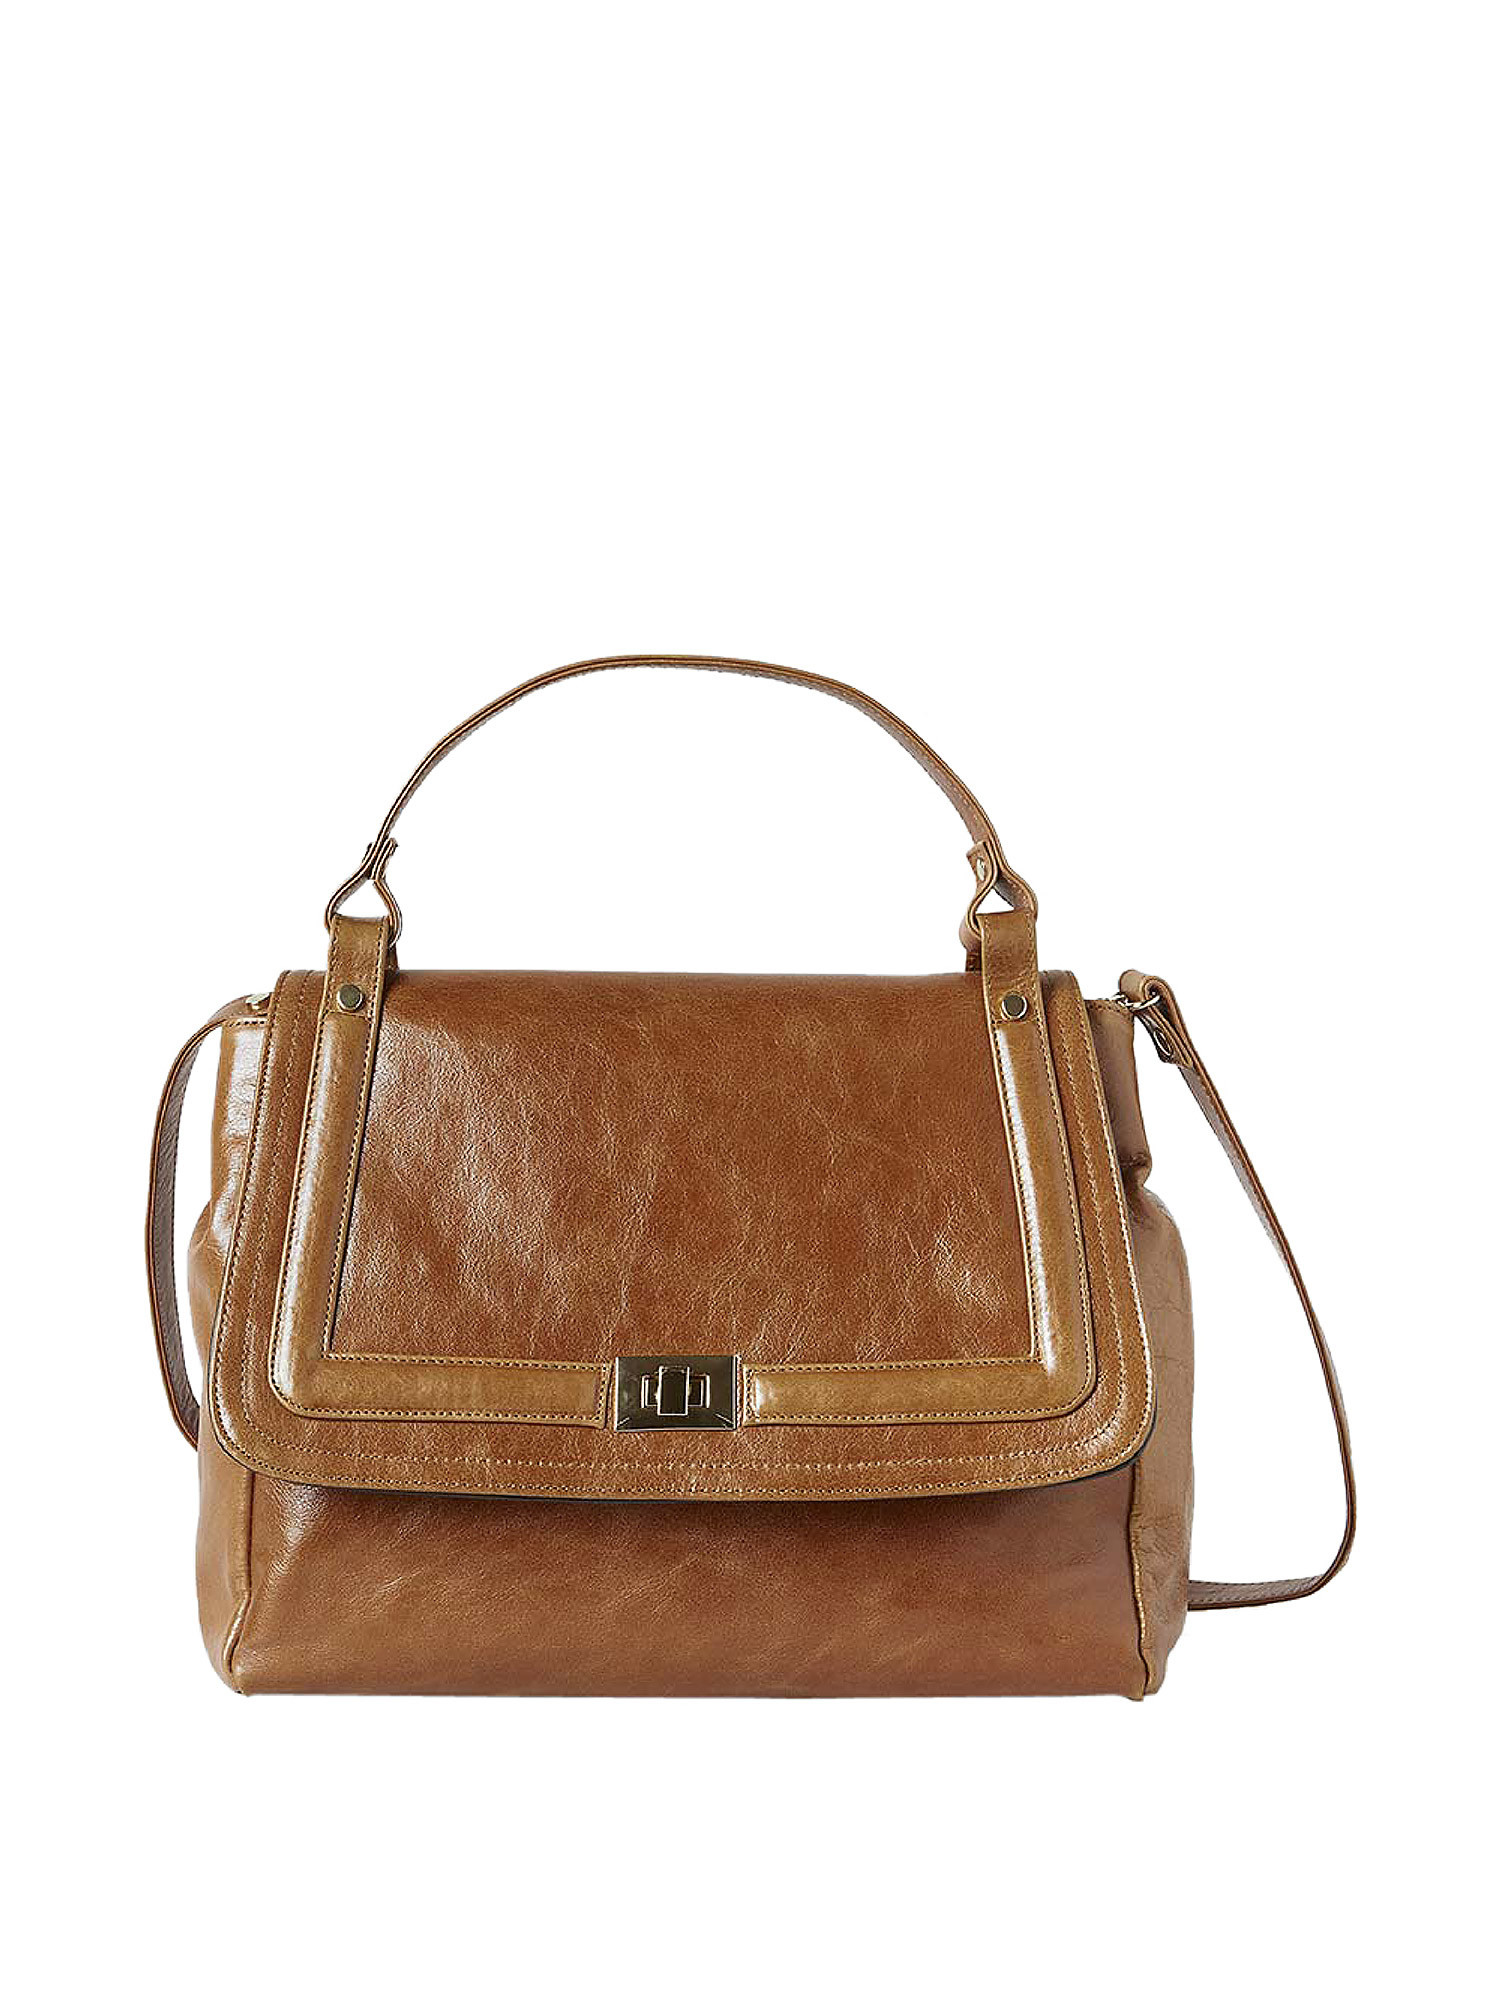 Borsa Flore in pelle, Marrone, large image number 0